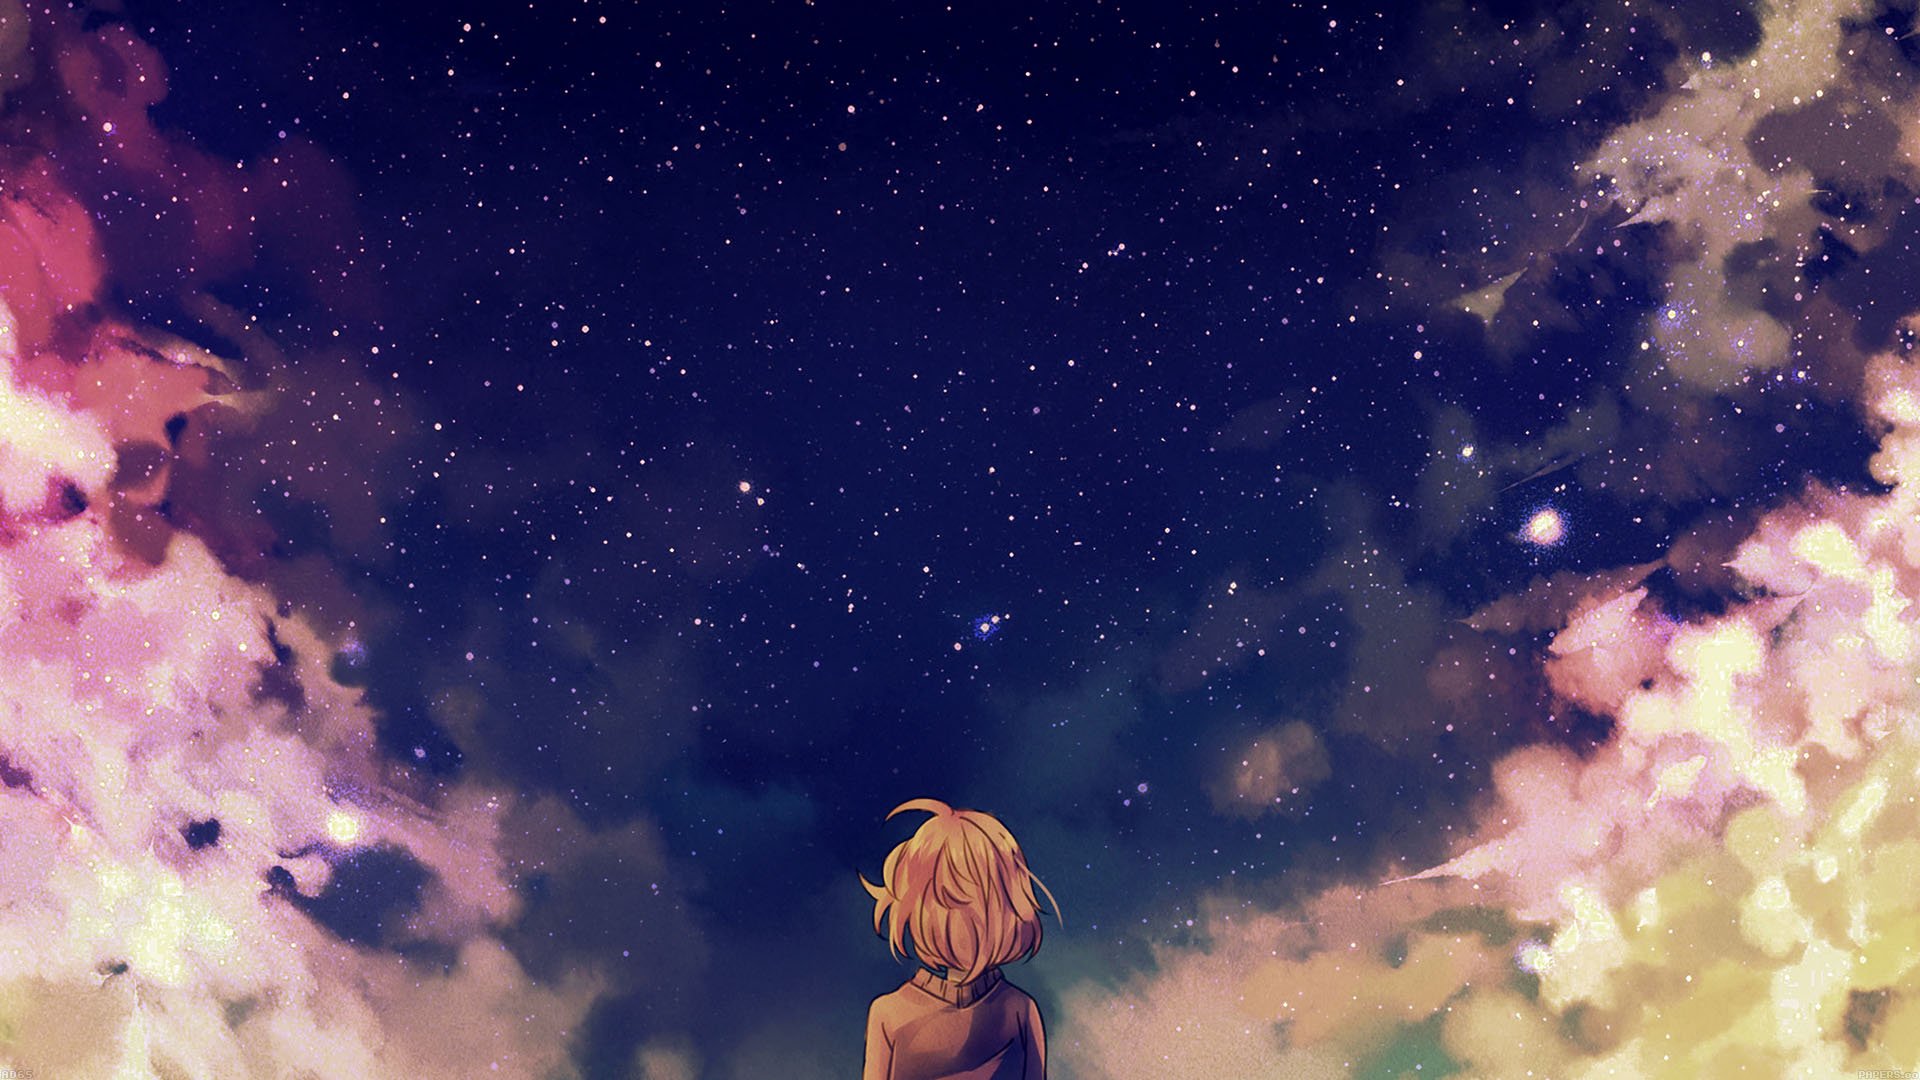 Google Image Cute Wallpapers Ad65 Starry Space Illust Anime Girl Wallpaper